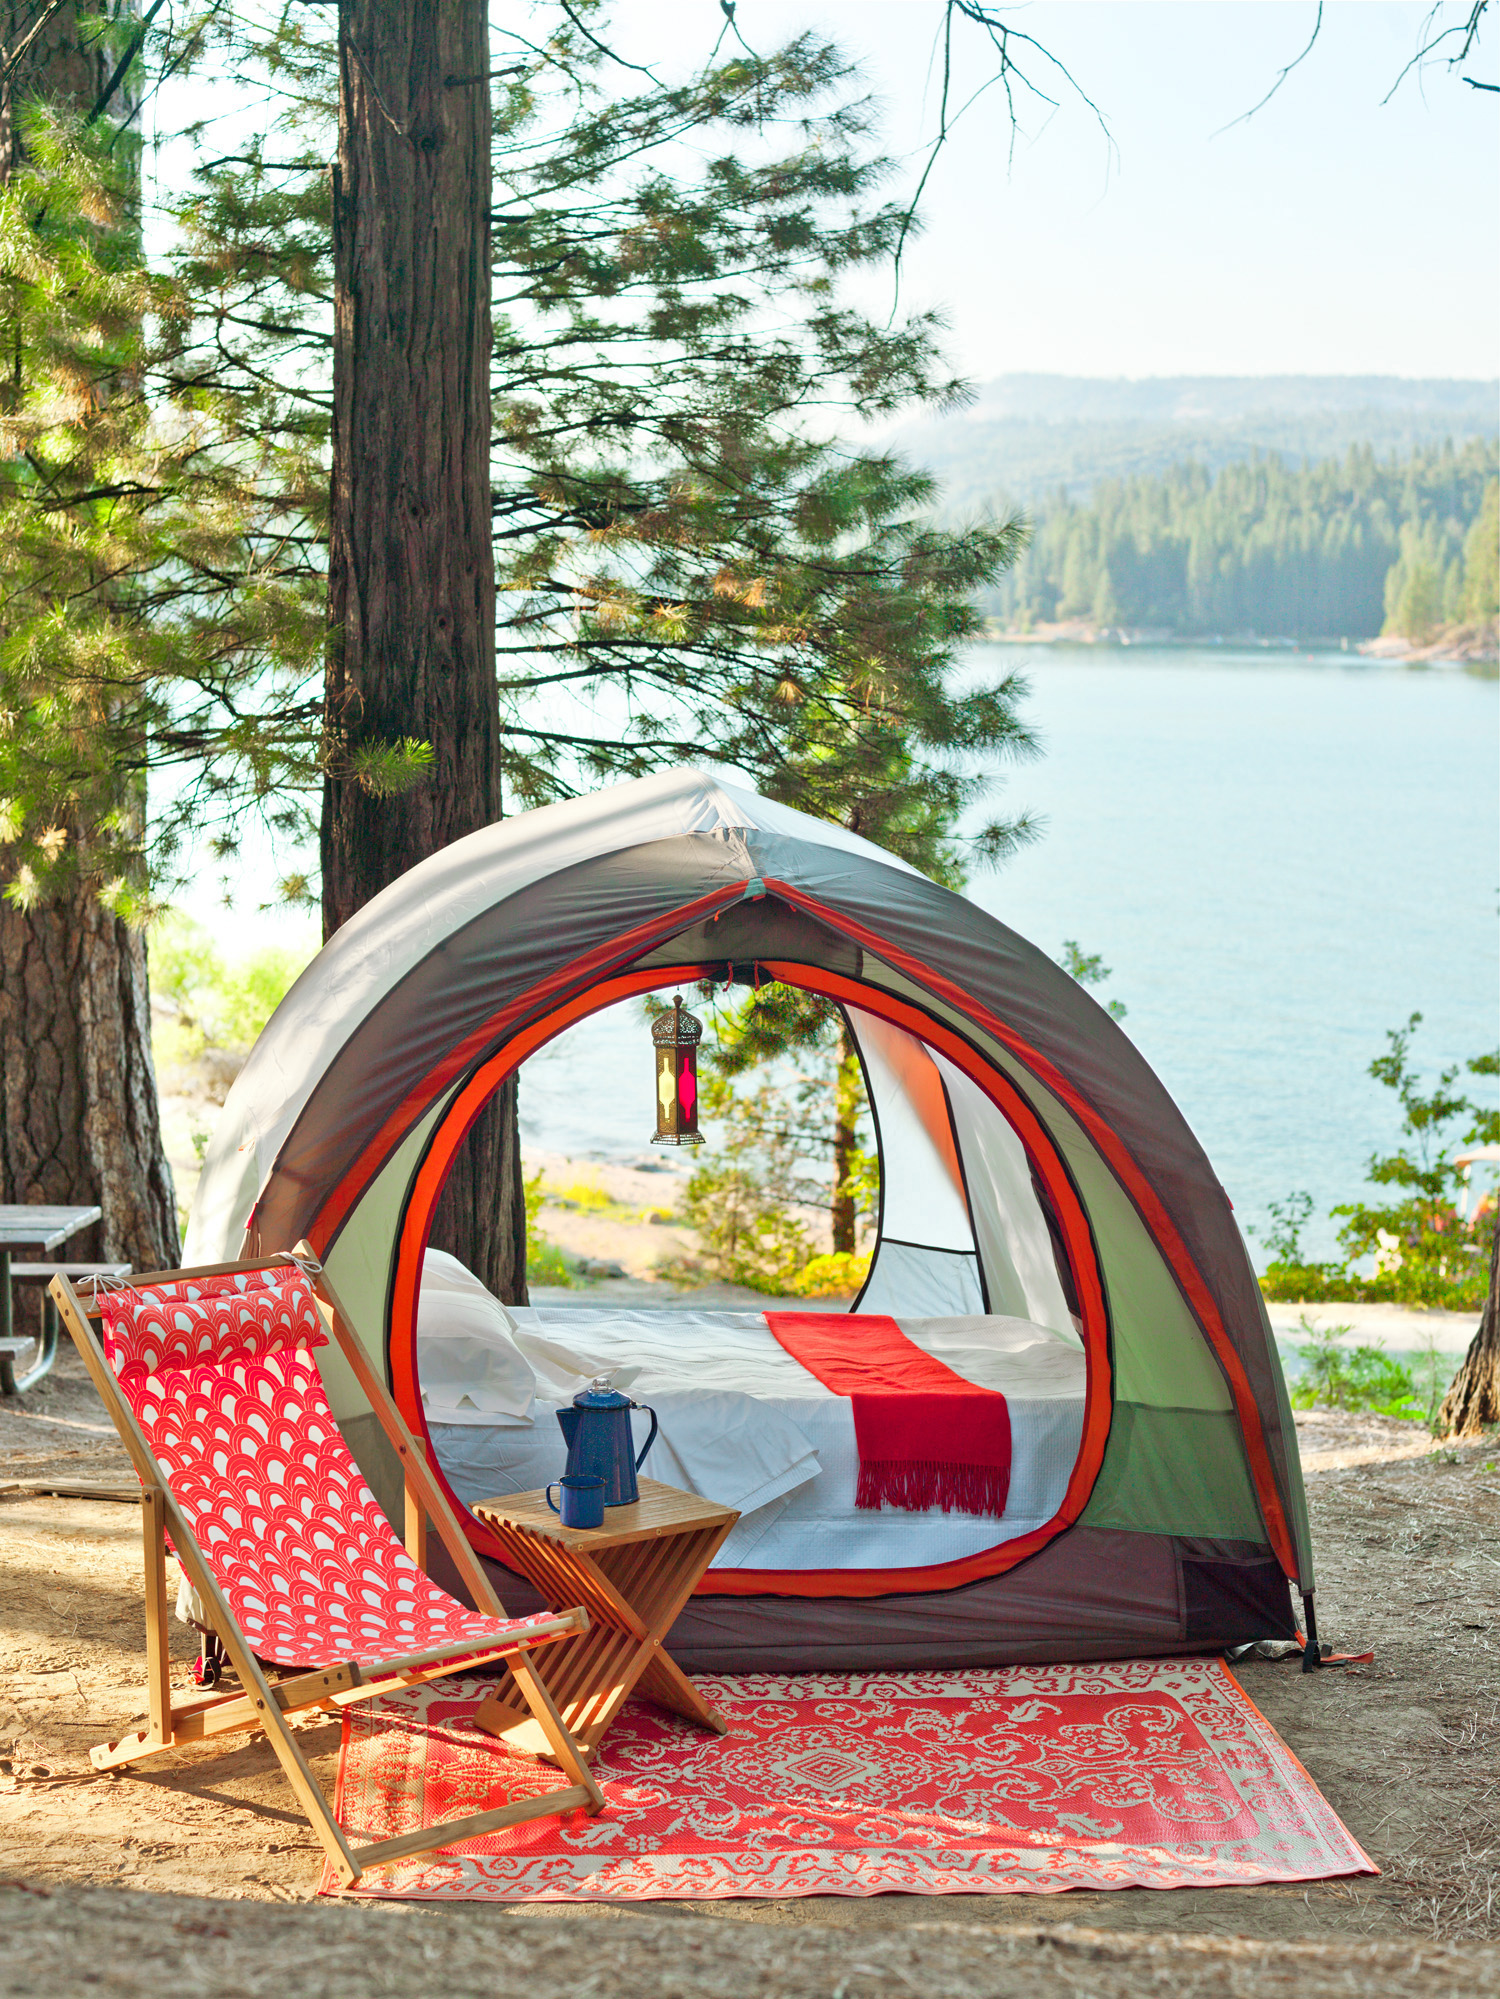 camping equipment for the perfect trip